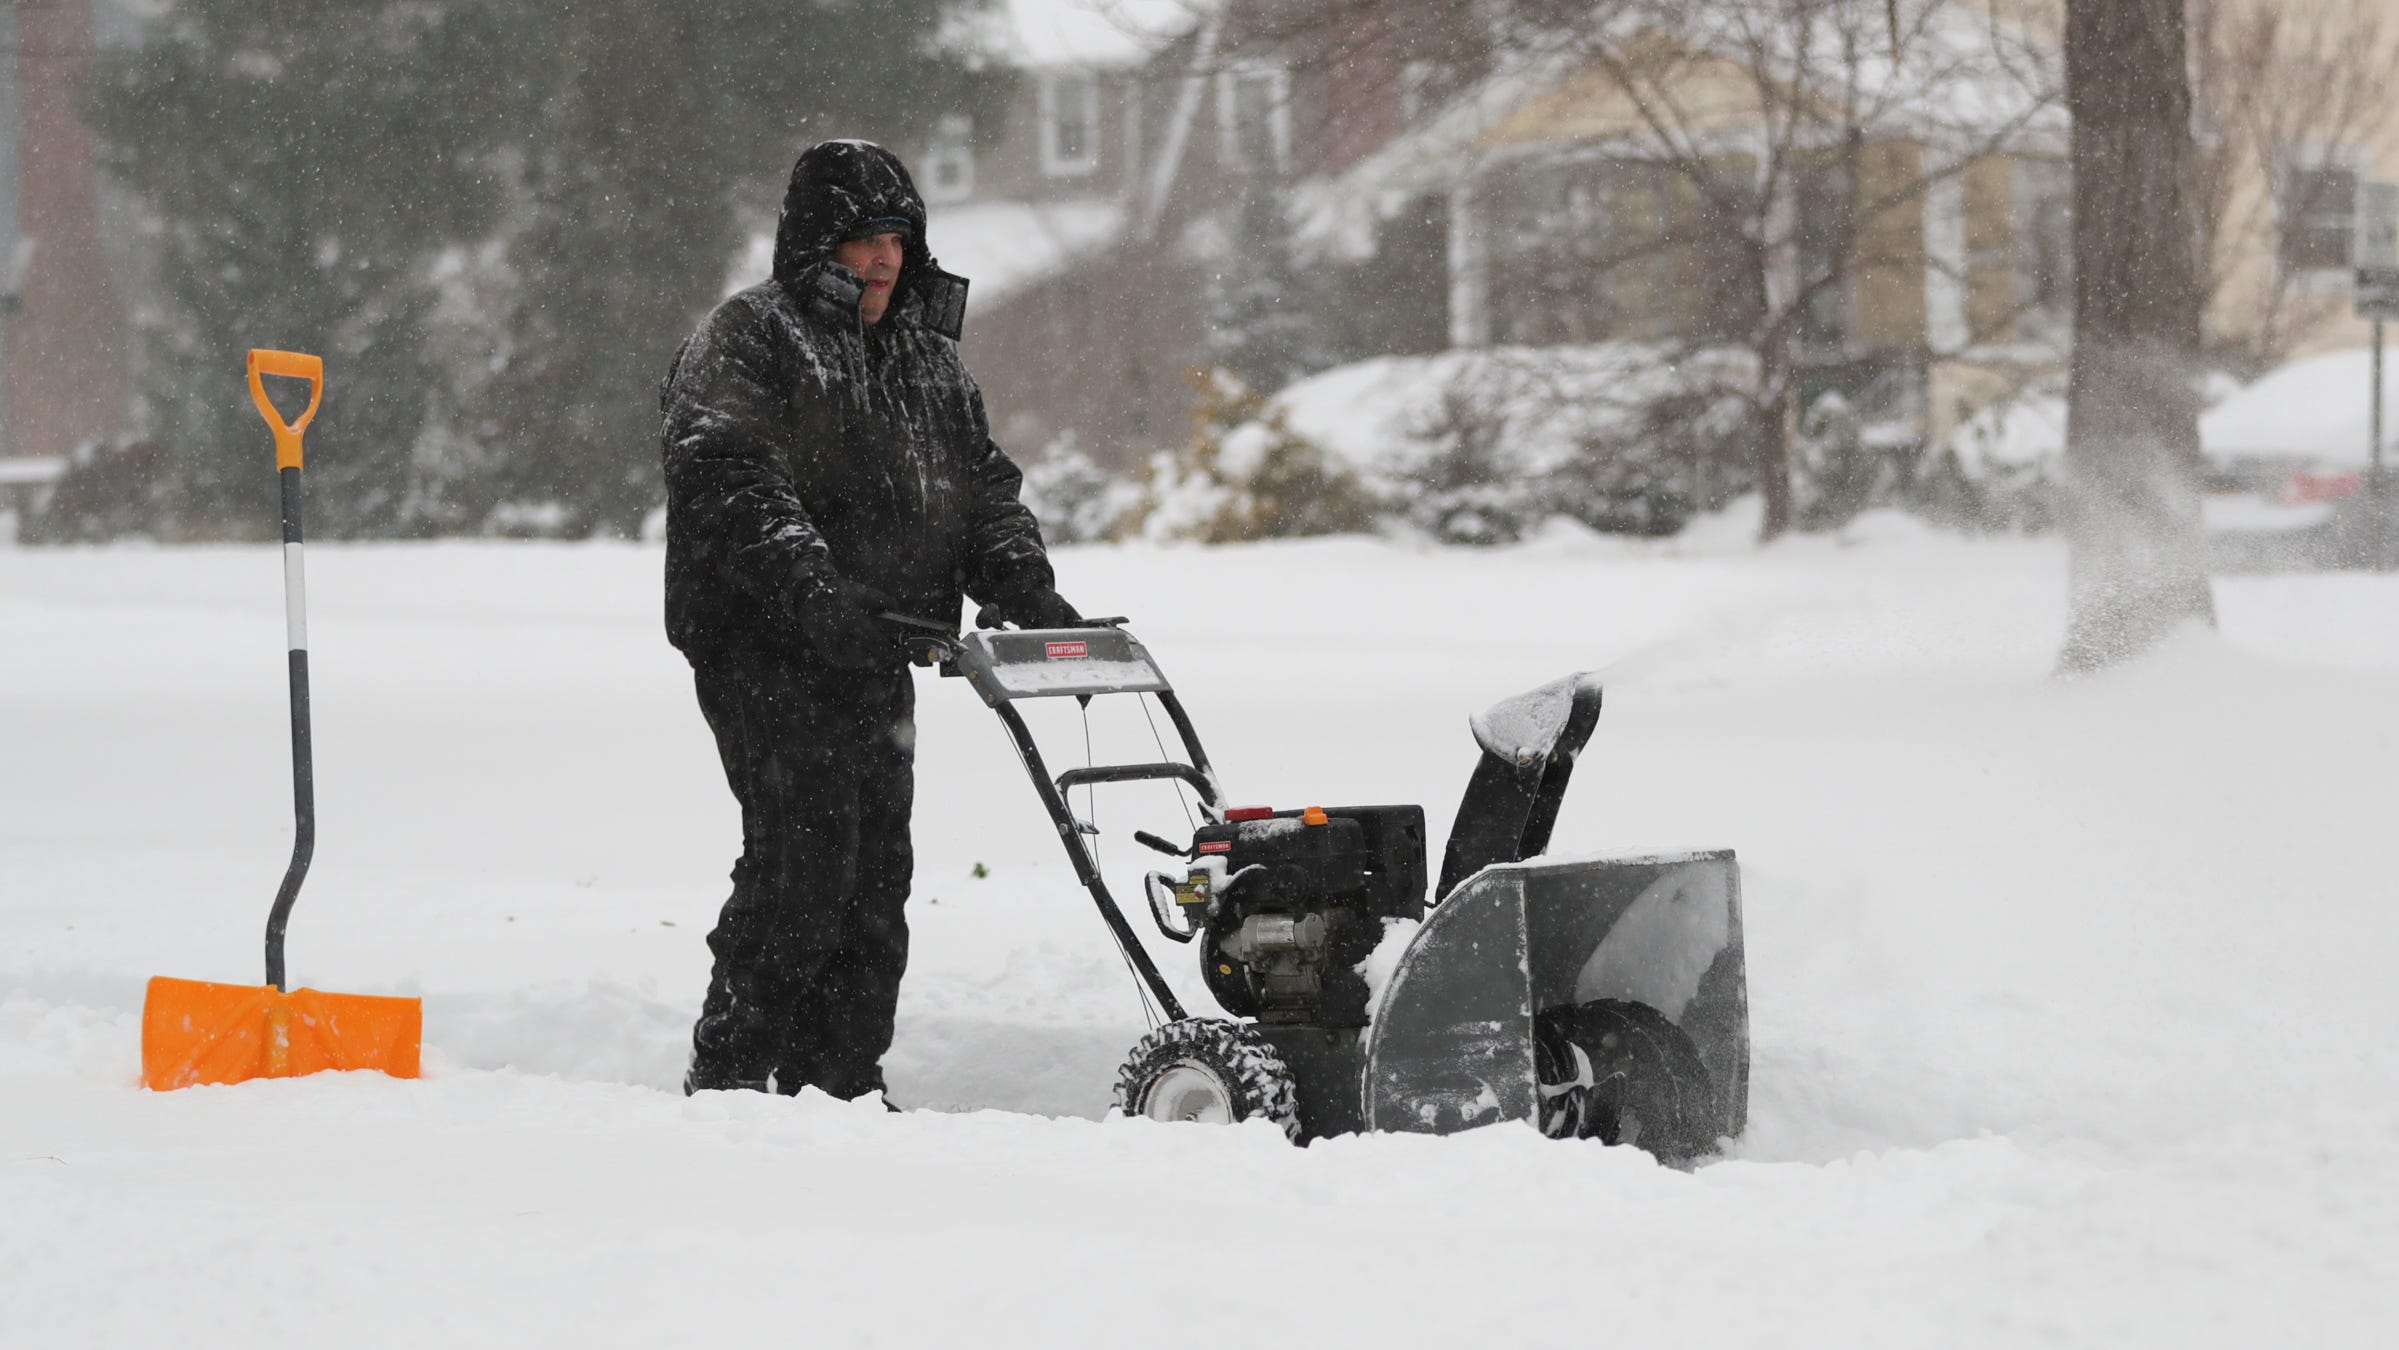 Robert Arone uses a snowblower to clear the snow from his driveway in Sloatsburg, New York, on Thursday, Dec. 17, 2020.